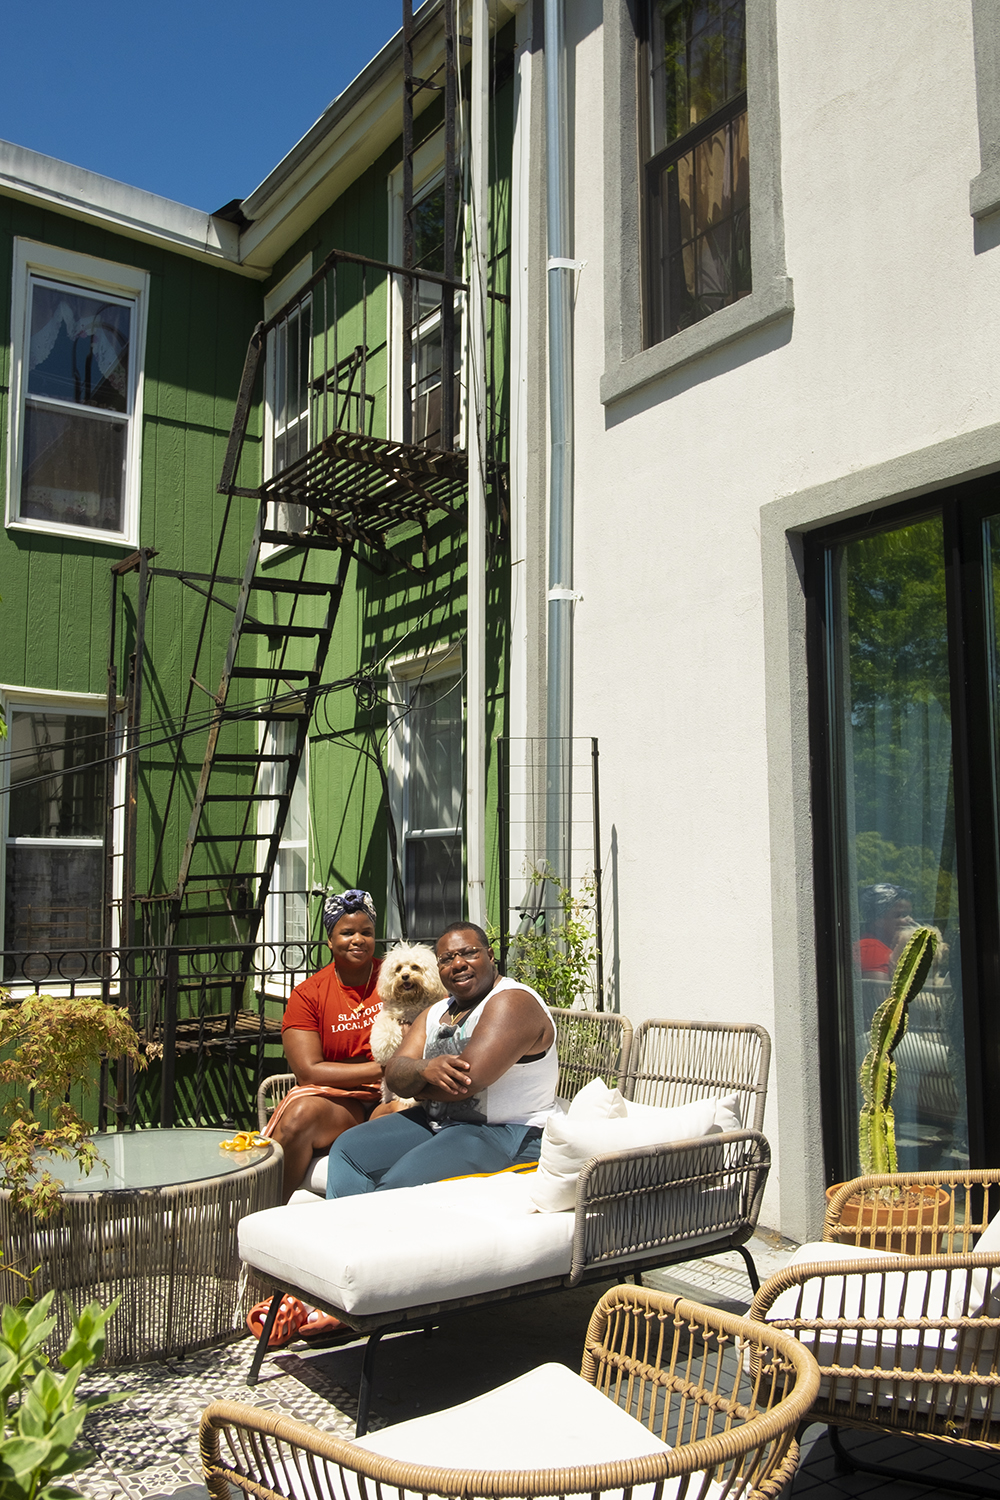 A Window In: Ericka and Ebony's Home of Unfiltered Joy